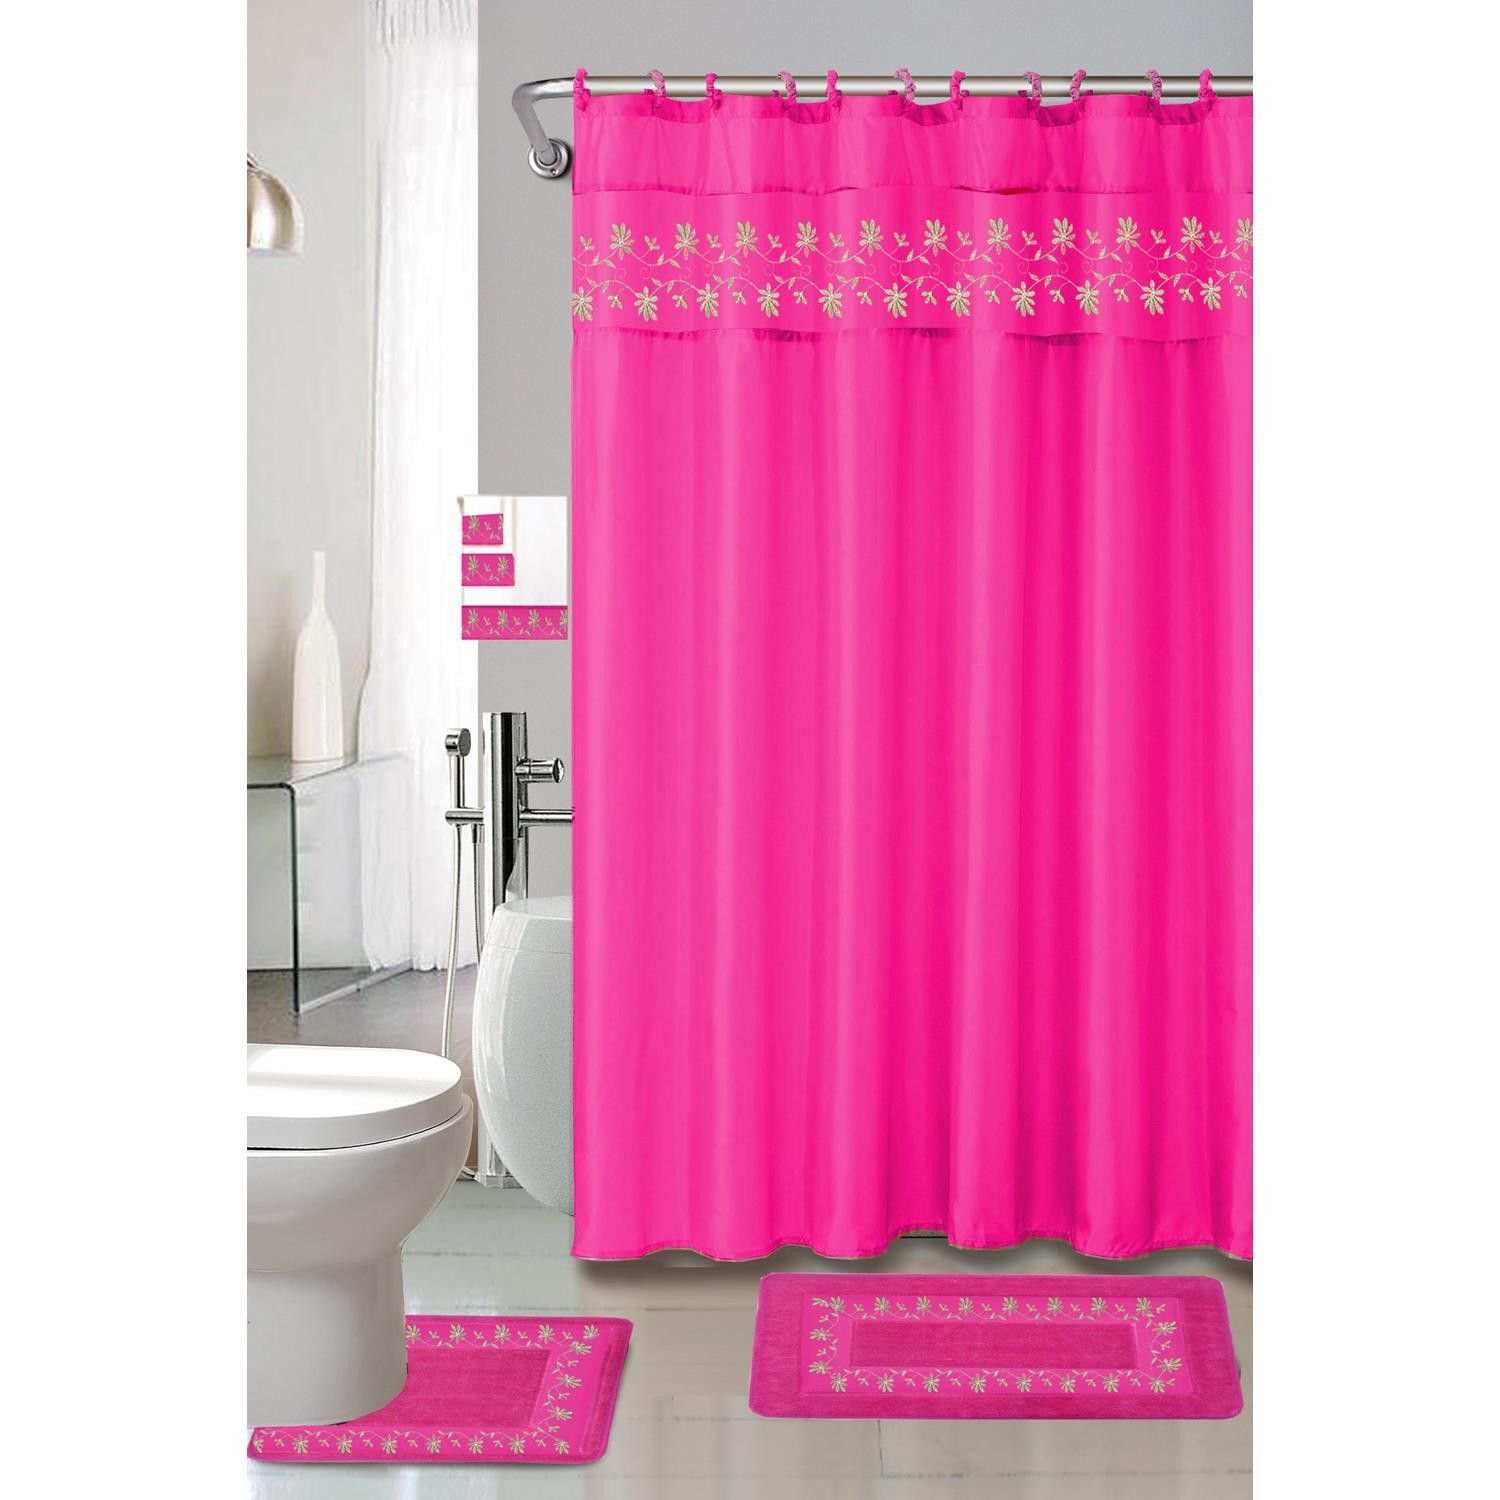 Kashi Home Thea 15 Piece Shower Curtain Bath Rug Set Fuchsia Hot